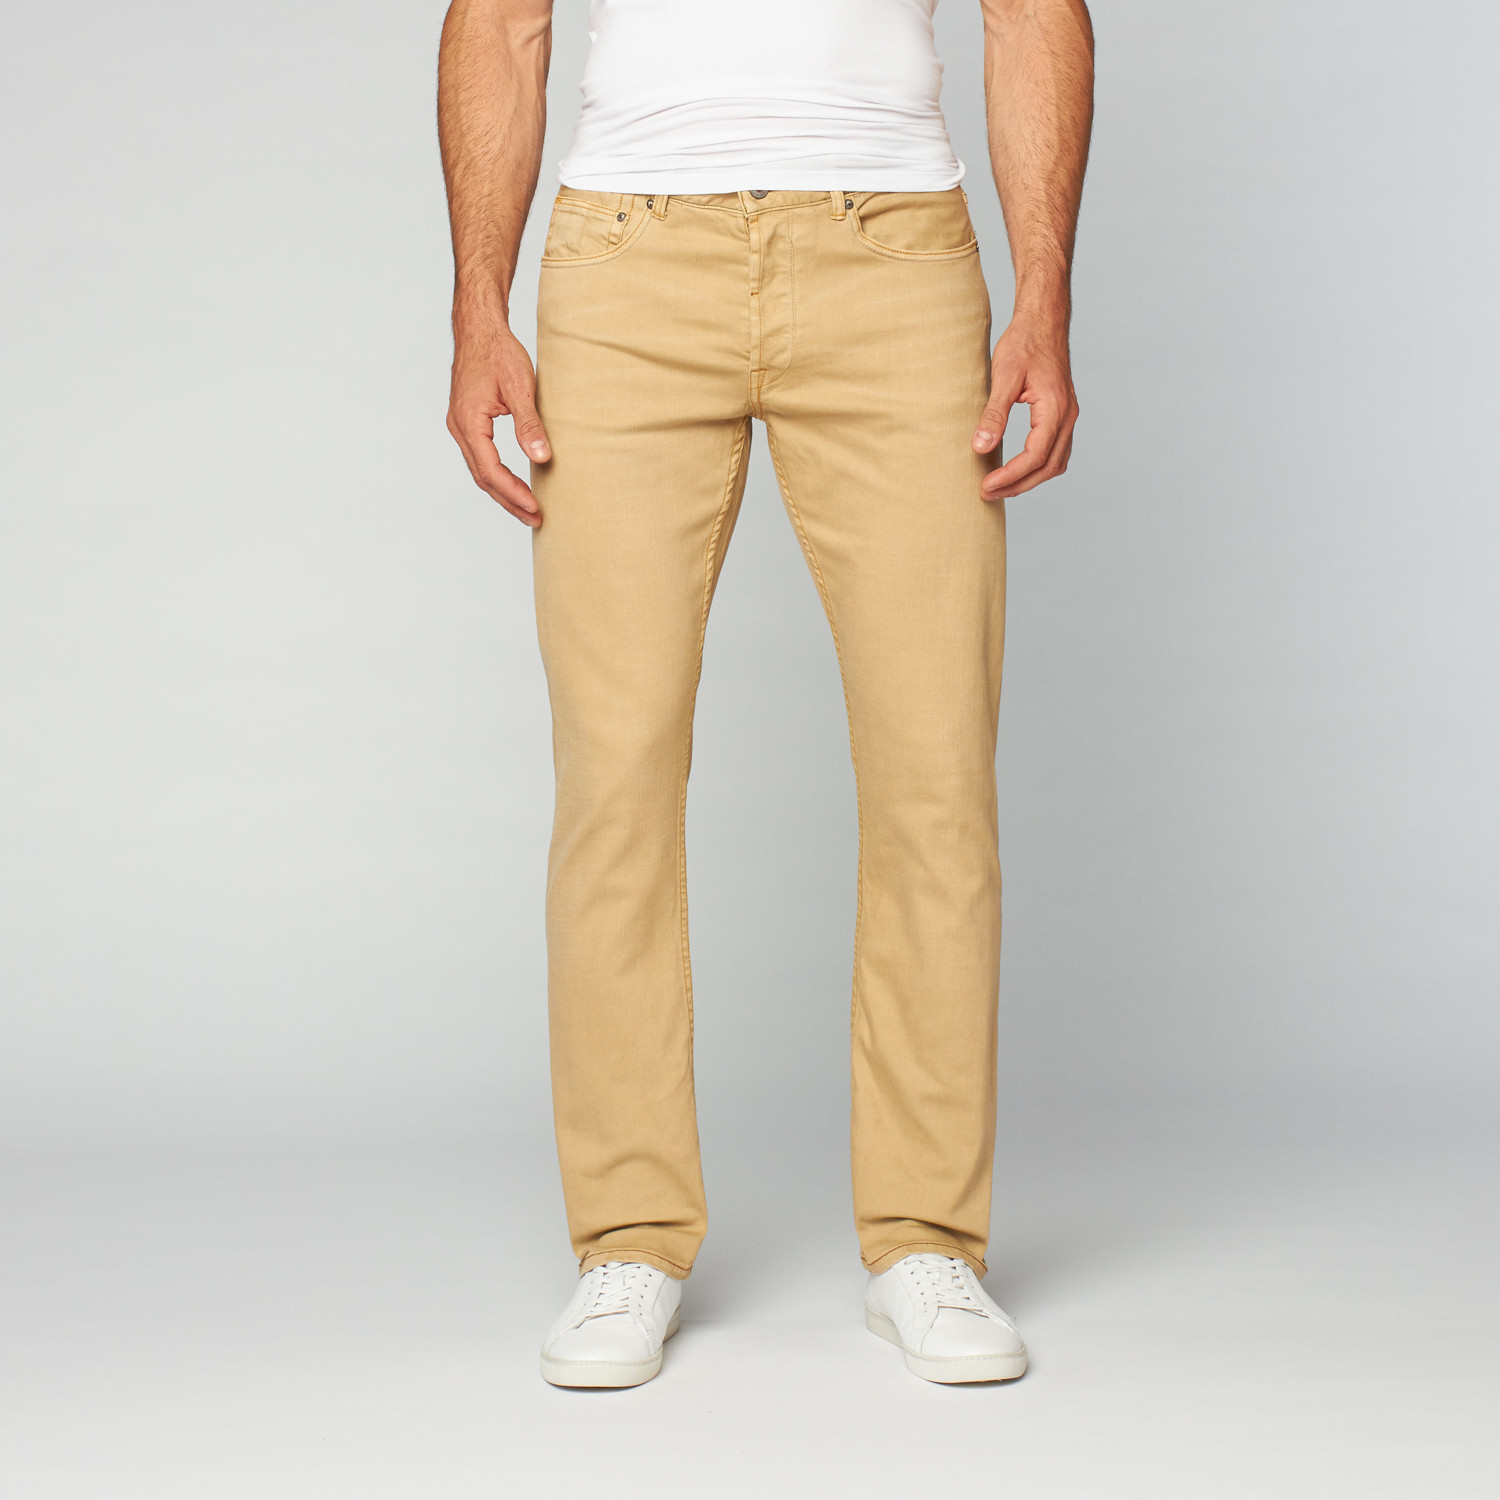 Shop Wrangler Men's Advanced Comfort Slim Straight Jeans online at fefdinterested.gq Designed for advanced comfort and exceptional style, Wrangler uses a modern slim cut and straight-leg design to create these classic blue jeans. Macy's Presents: The Edit- /5(63).